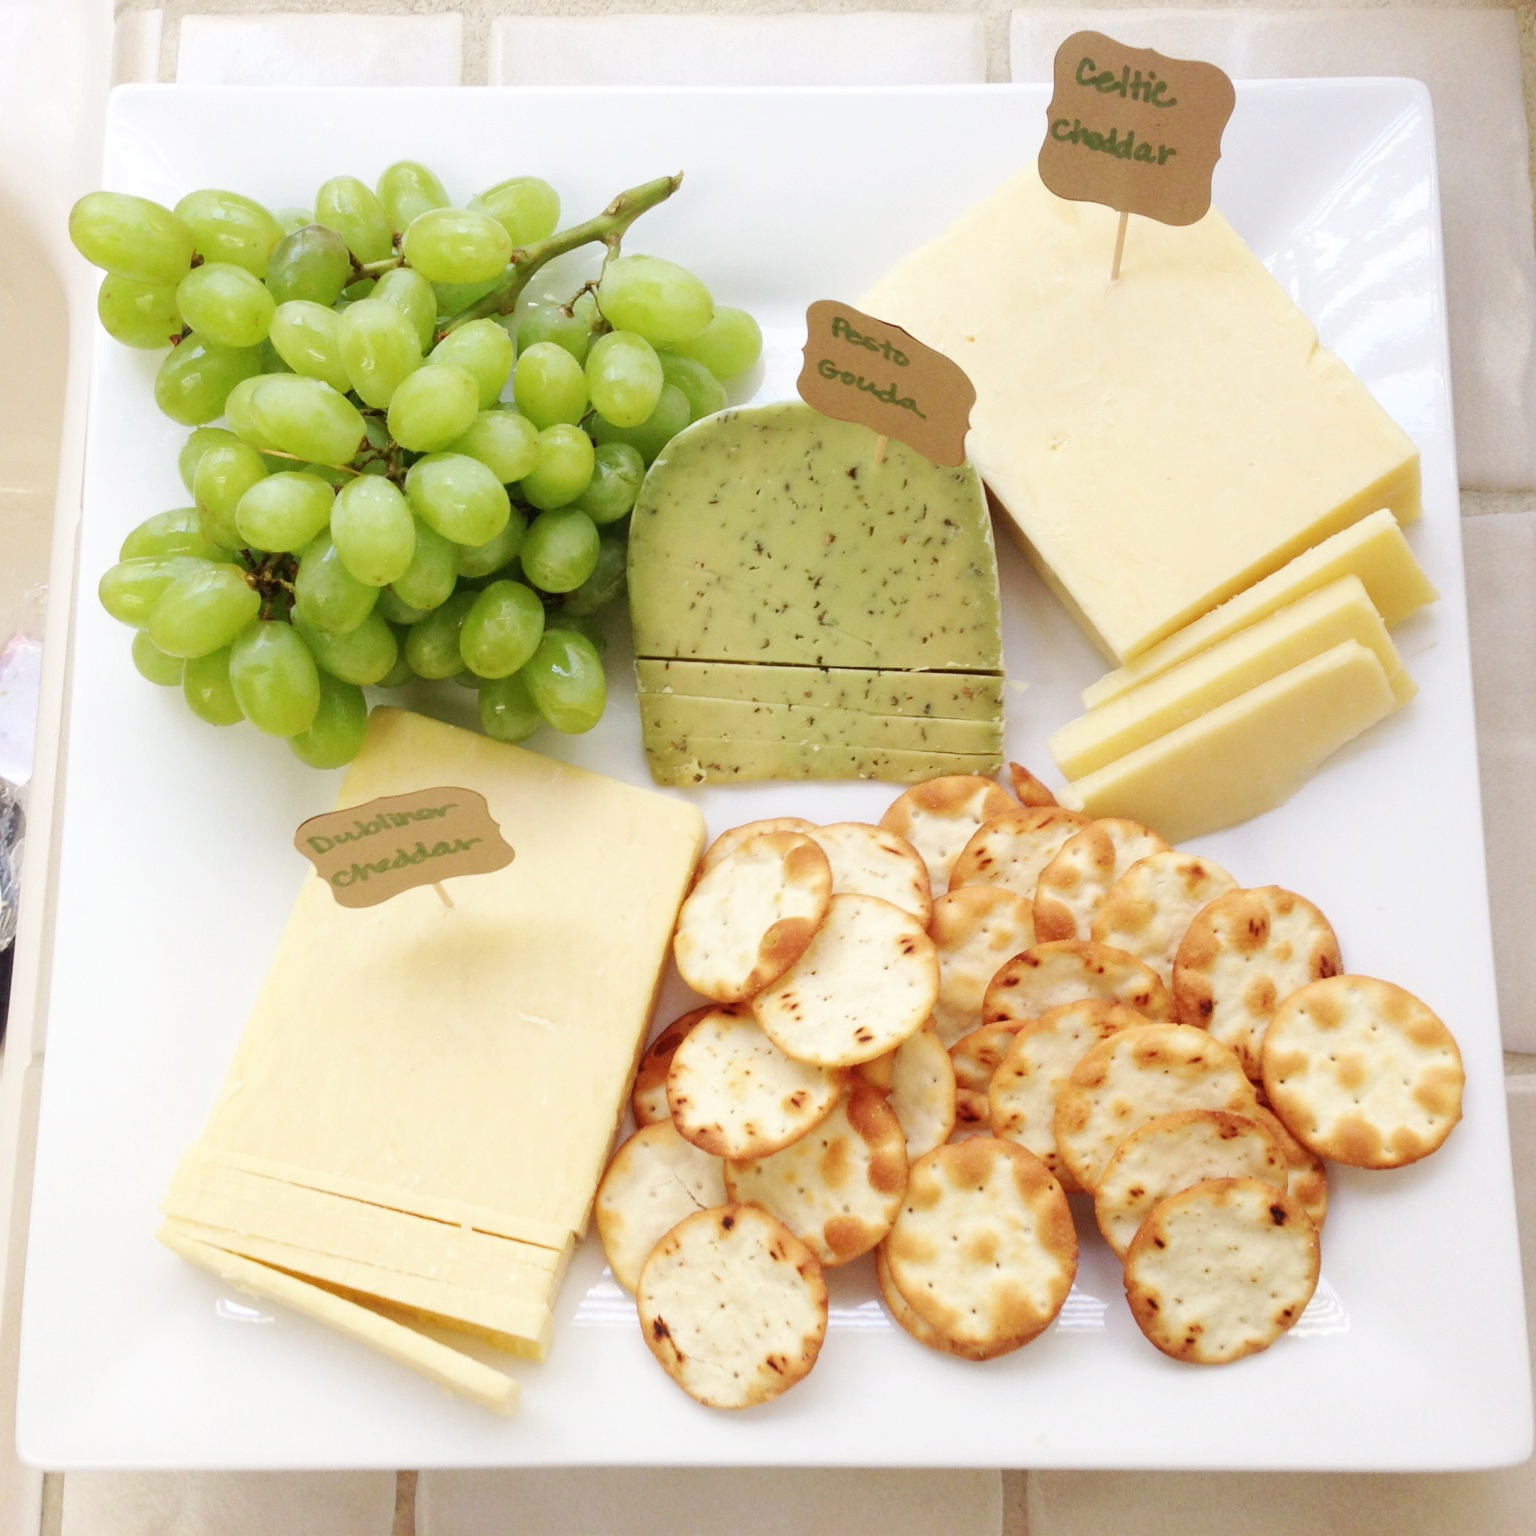 In addition to the Irish Soda Bread I also threw together a St. Pattyu0027s Cheese plate. I got the idea Friday afternoon when I was shopping at Trader Joeu0027s.  sc 1 st  Meet the Sullivans & Meet the Sullivans: St. Patricku0027s Weekend Wrap-Up